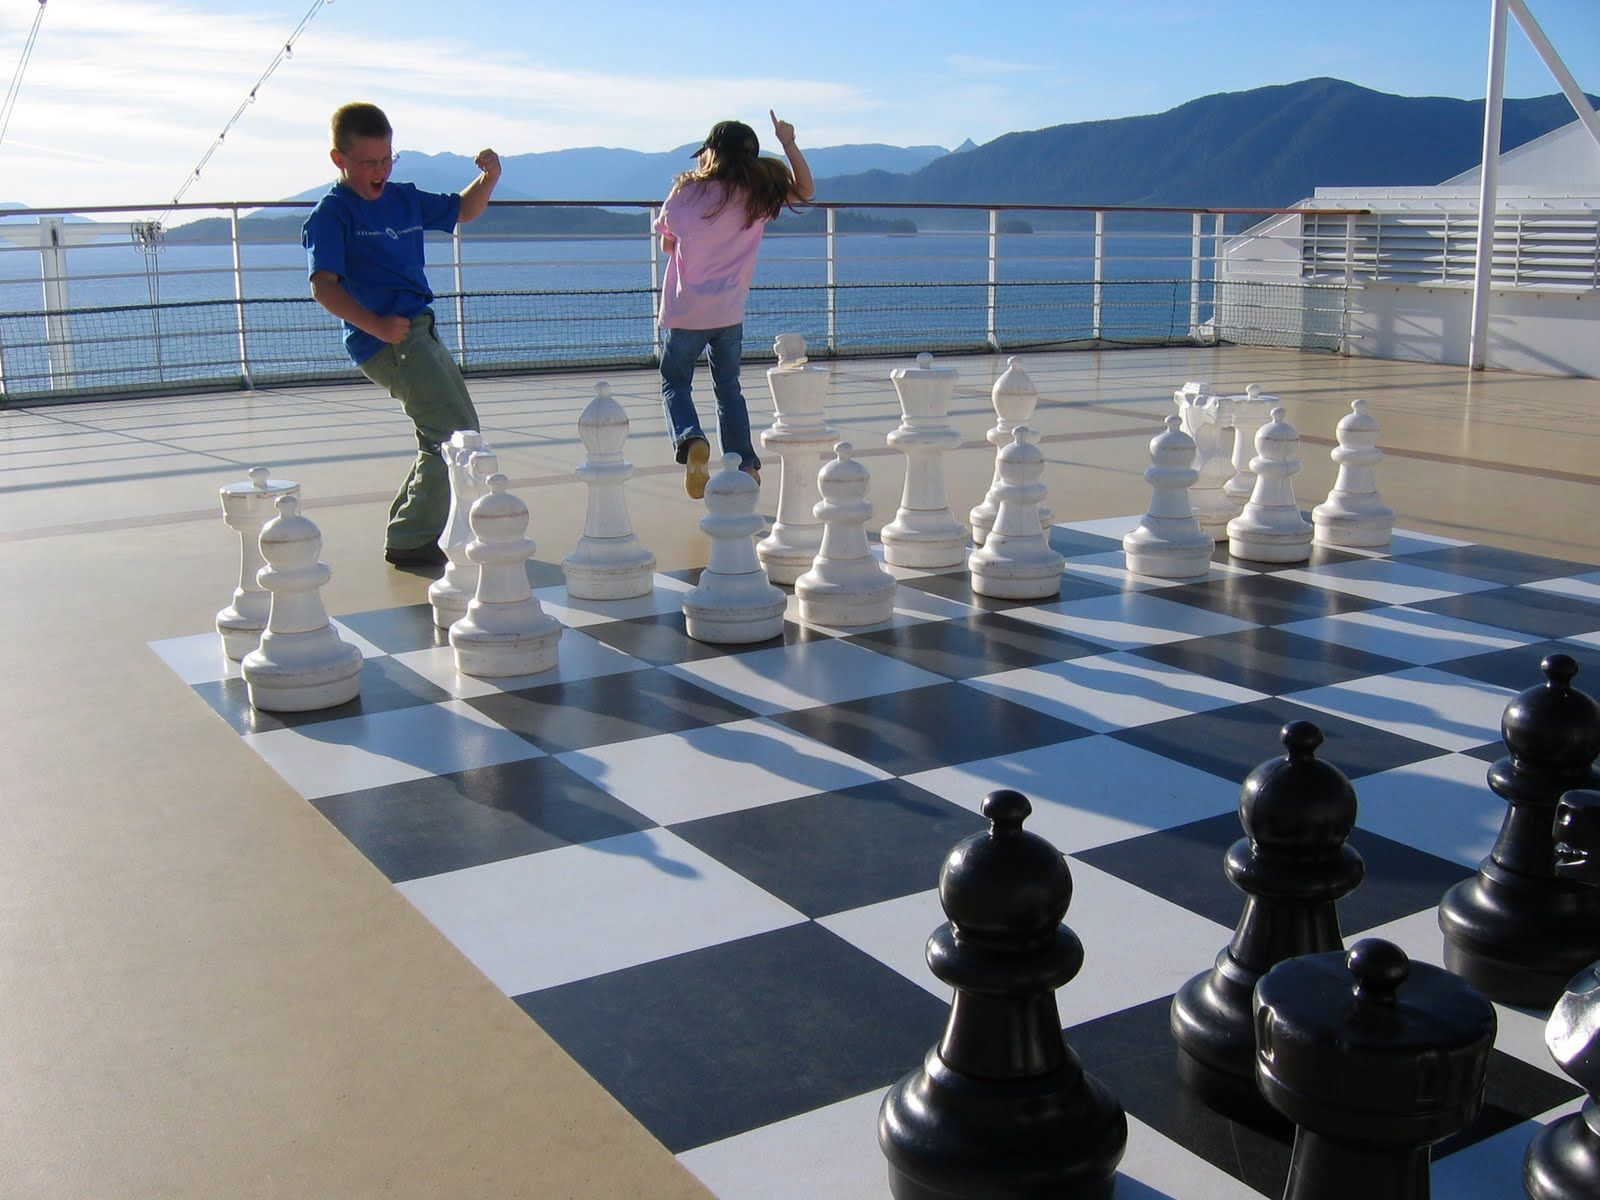 Gotta do this! But I'll need to learn chess before...:)